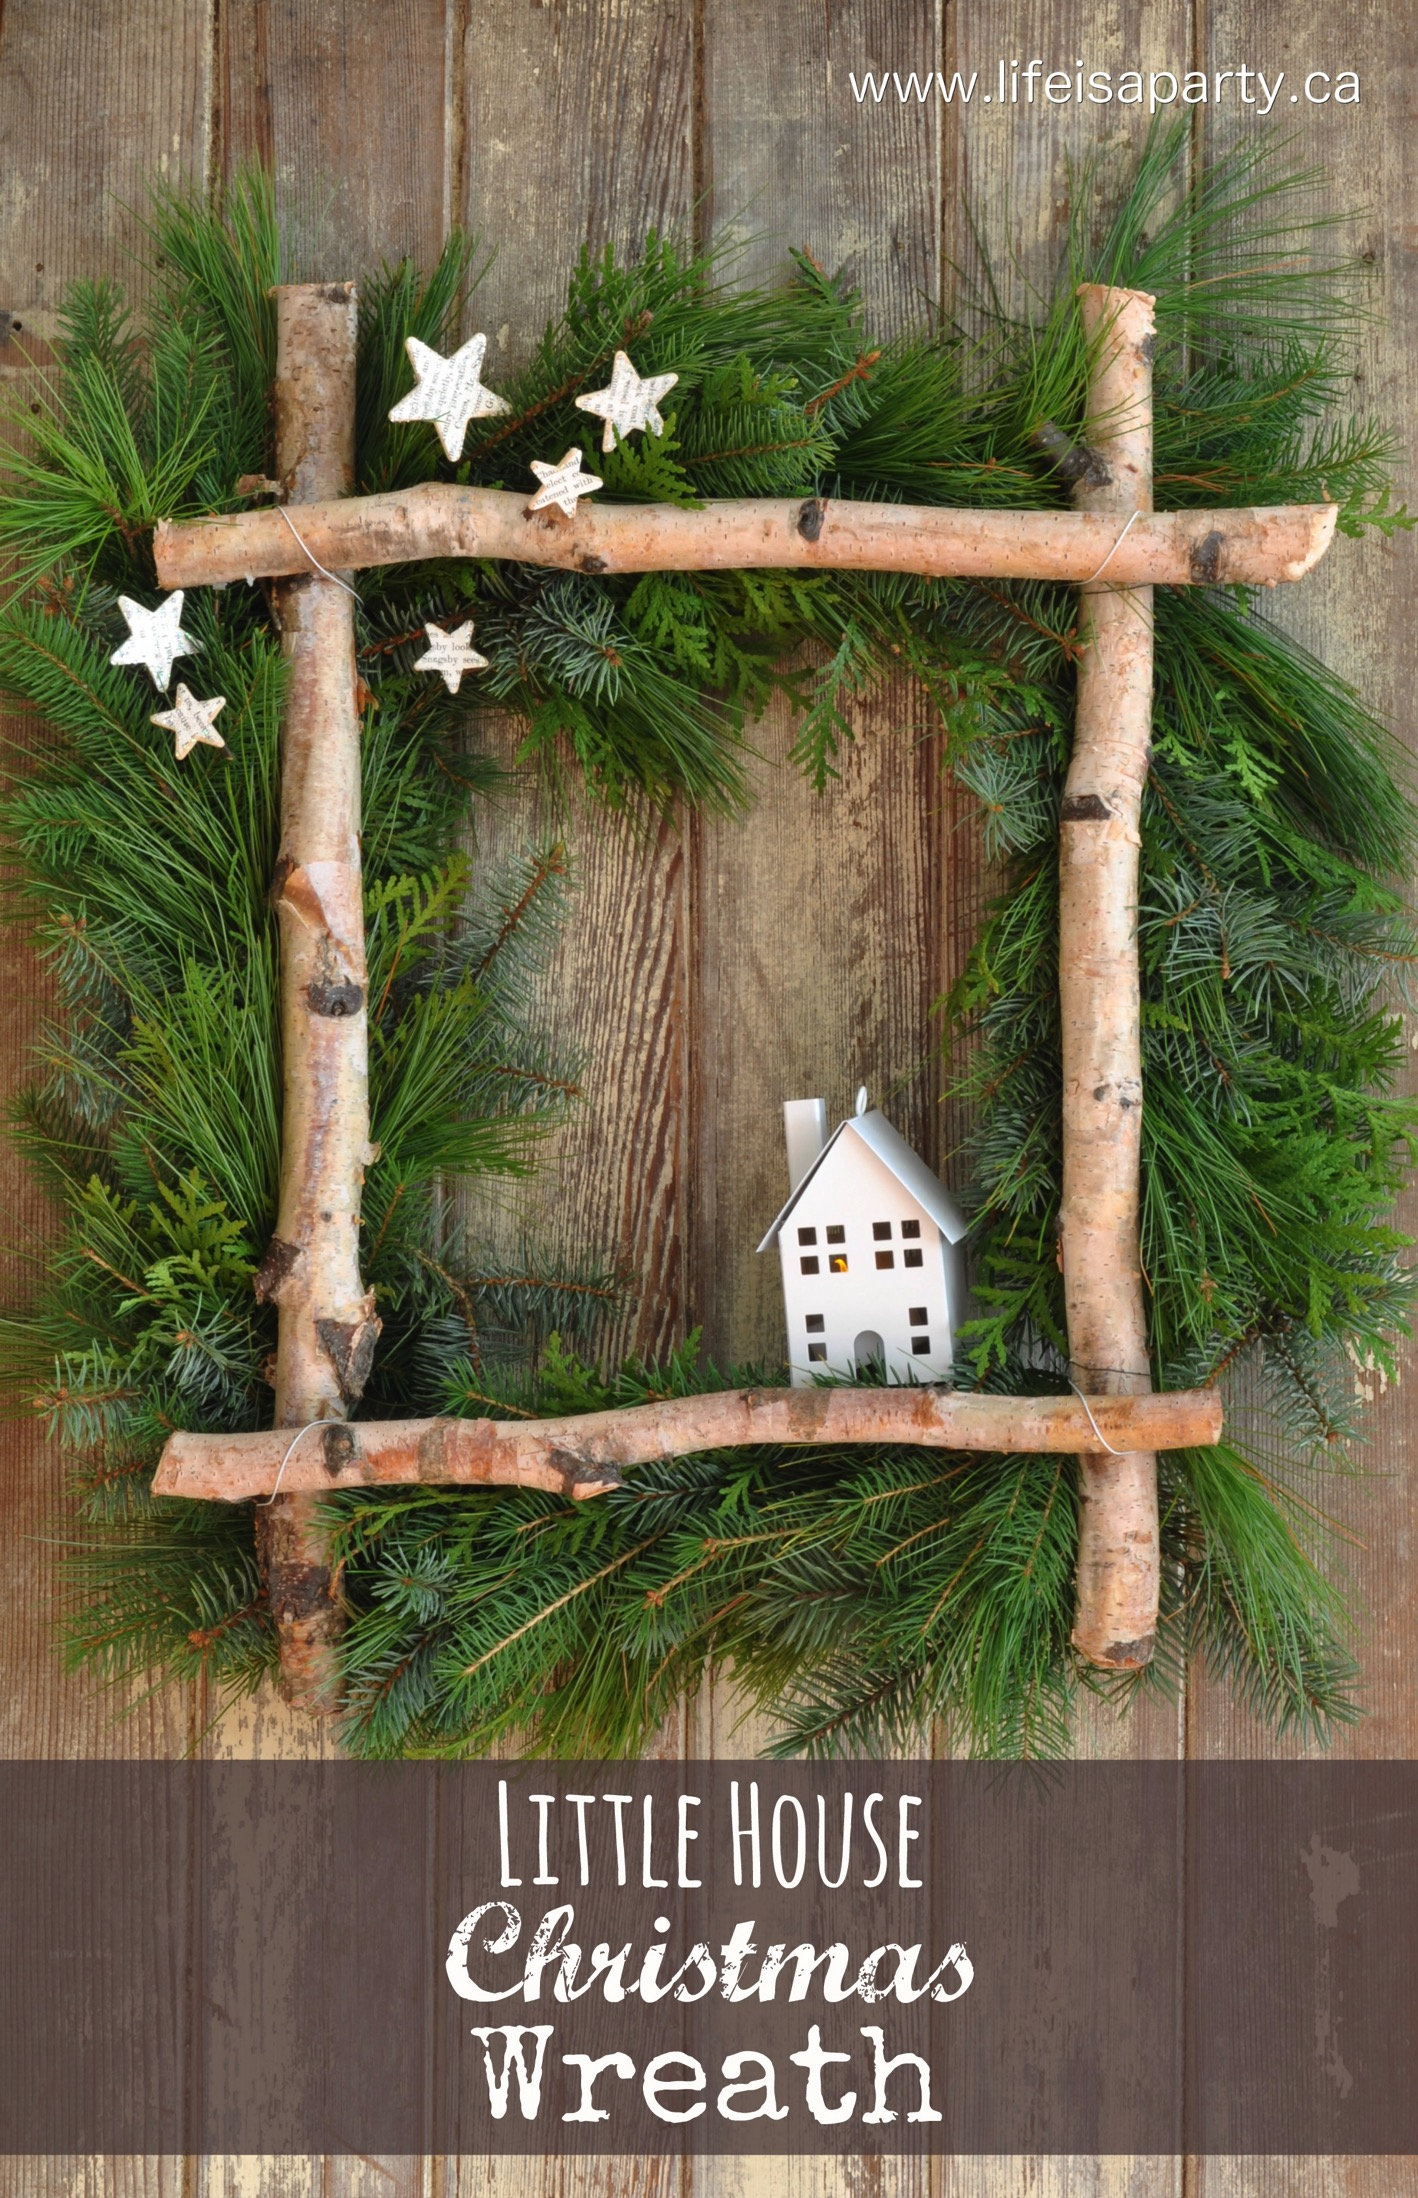 Little House Christmas Wreath | 25+ Beautiful Christmas Wreaths